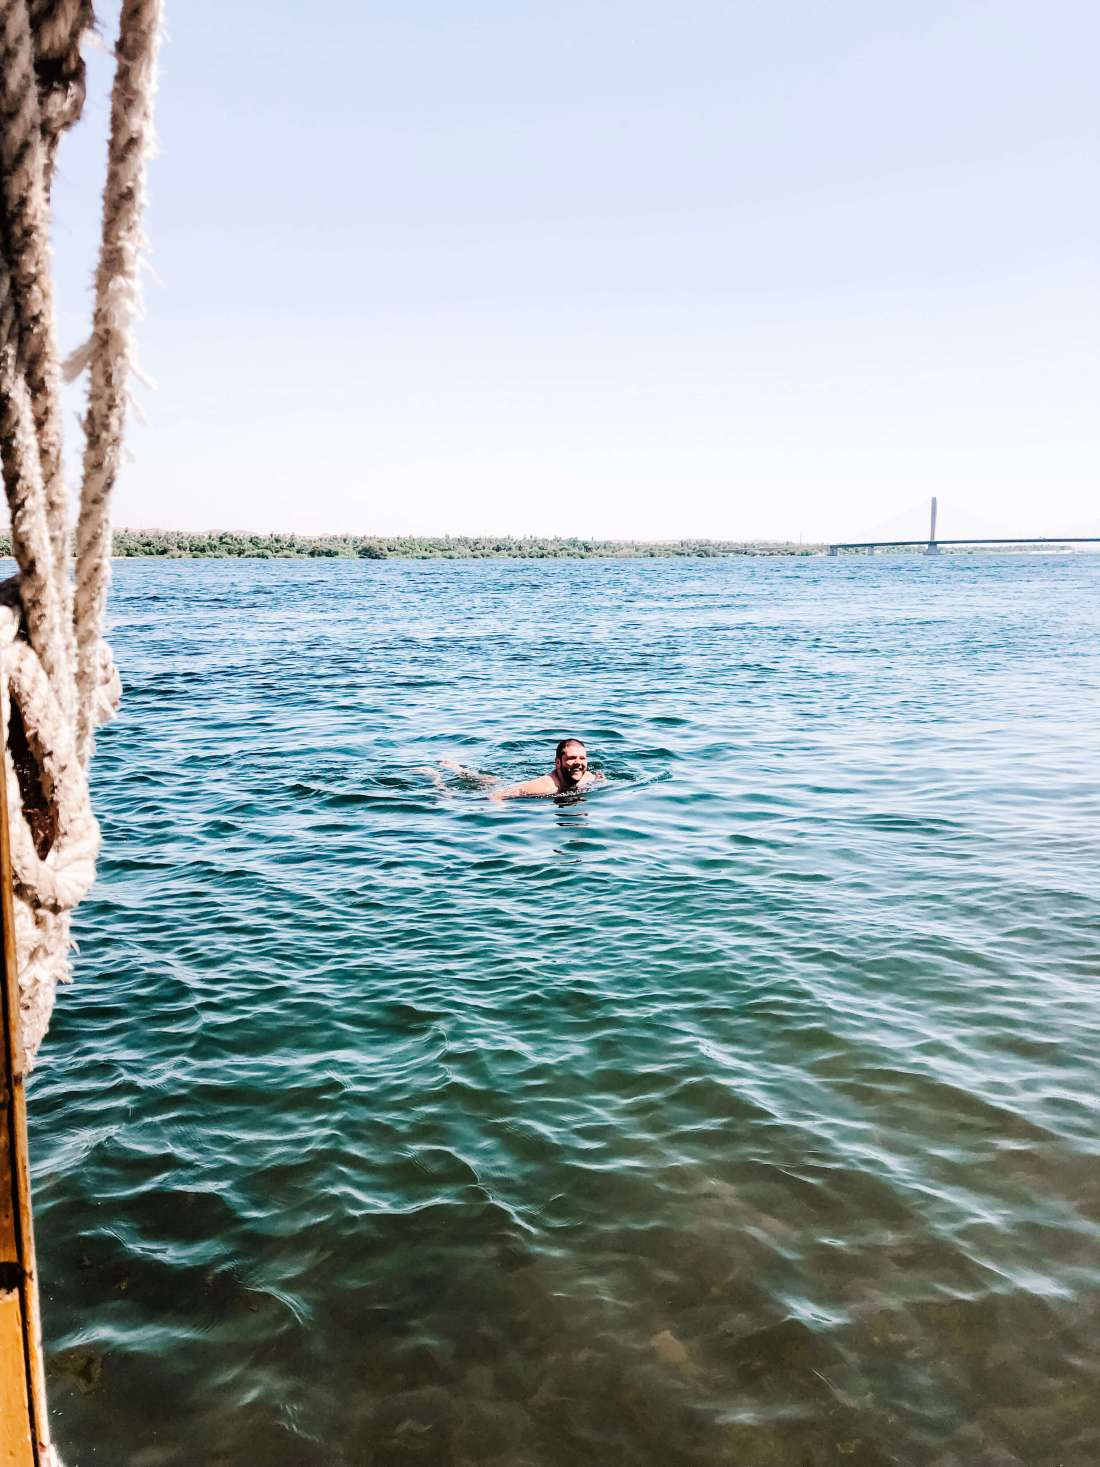 Dan swimming in the Nile